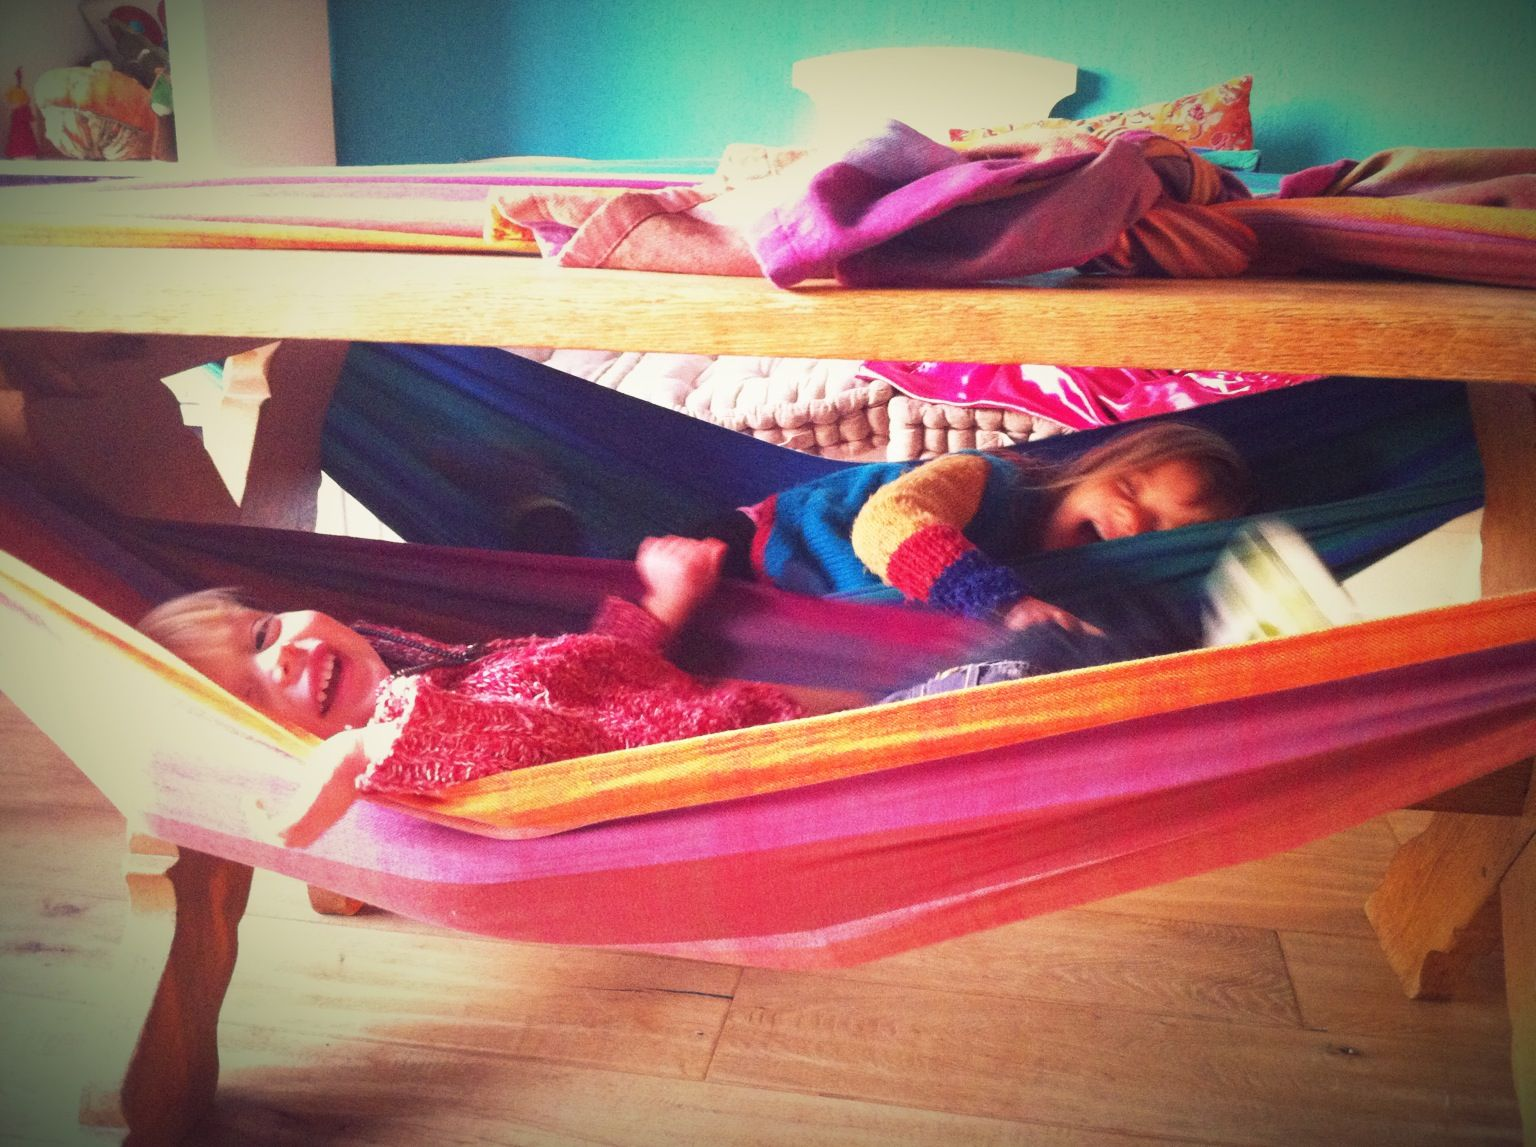 Indoor hammock bed for kids - Indoor Hammock Made Of Woven Wraps Under The Dinner Table